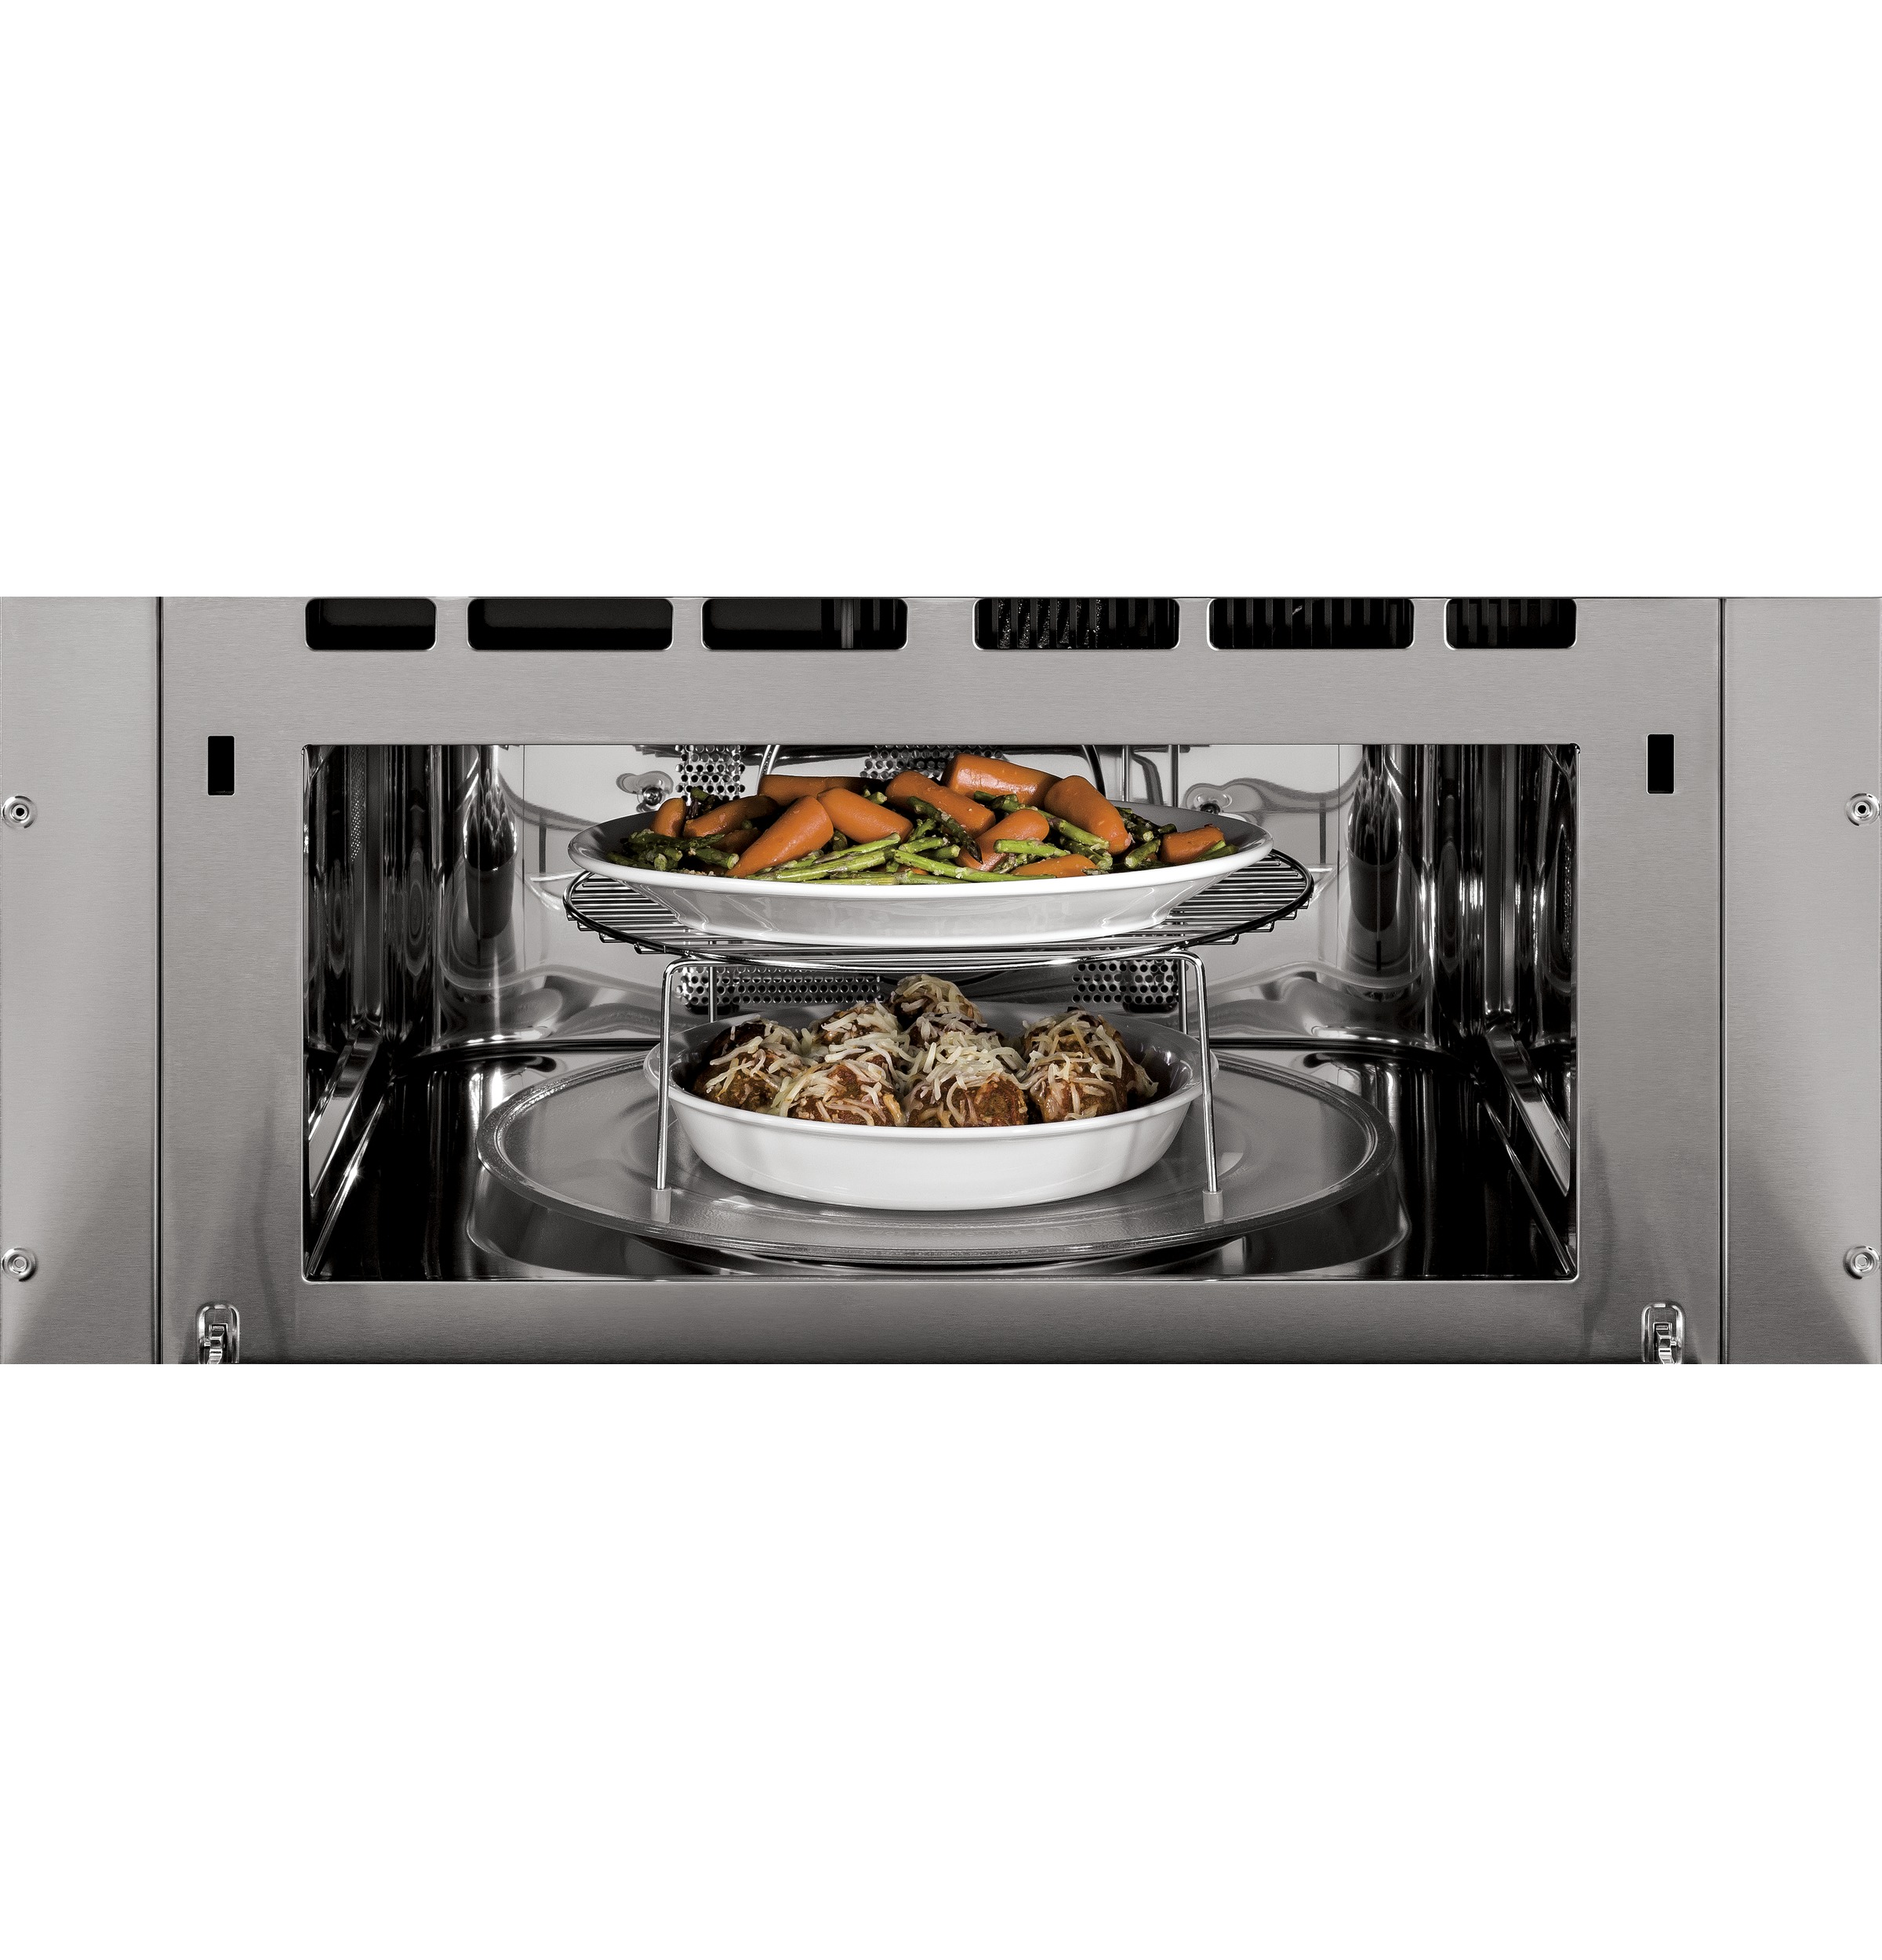 Model: PSB9120BLTS | GE Profile™ Series 30 in. Single Wall Oven with Advantium® Technology